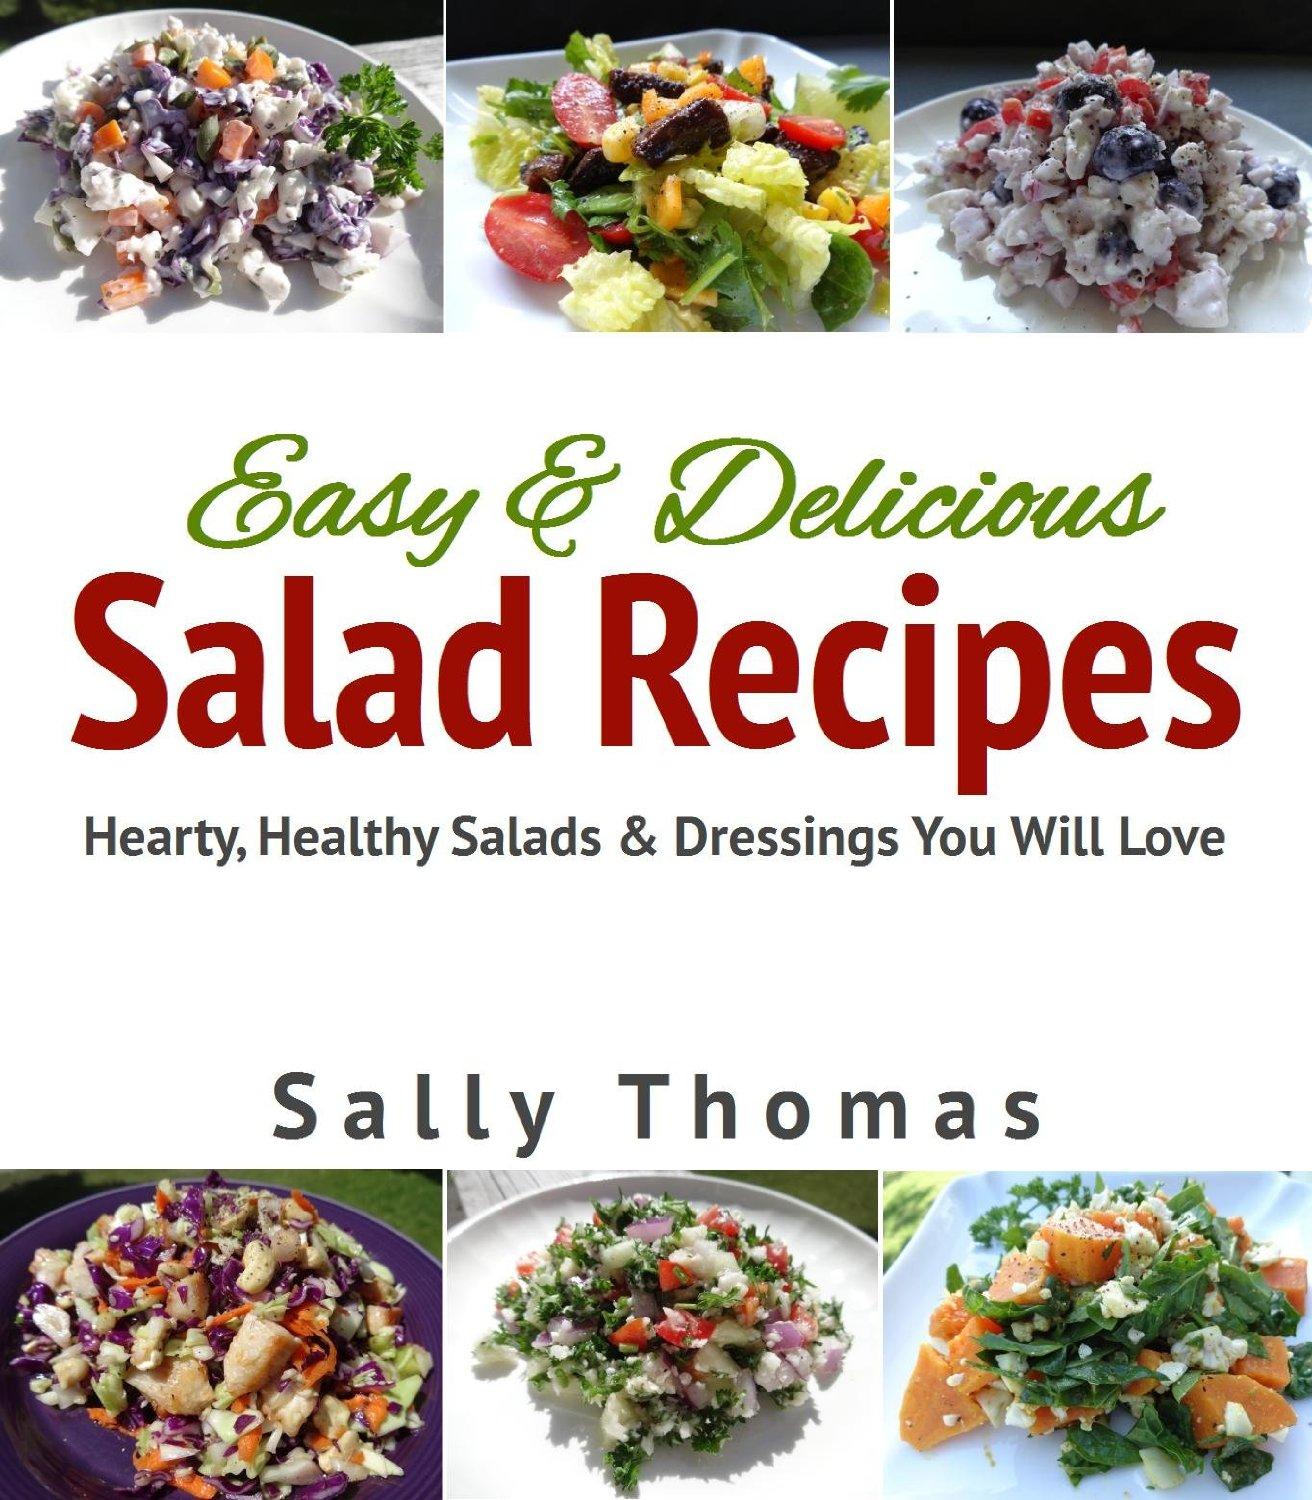 Easy & Delicious Salad Recipes: Hearty, Healthy Salads & Dressings You Will Love free download